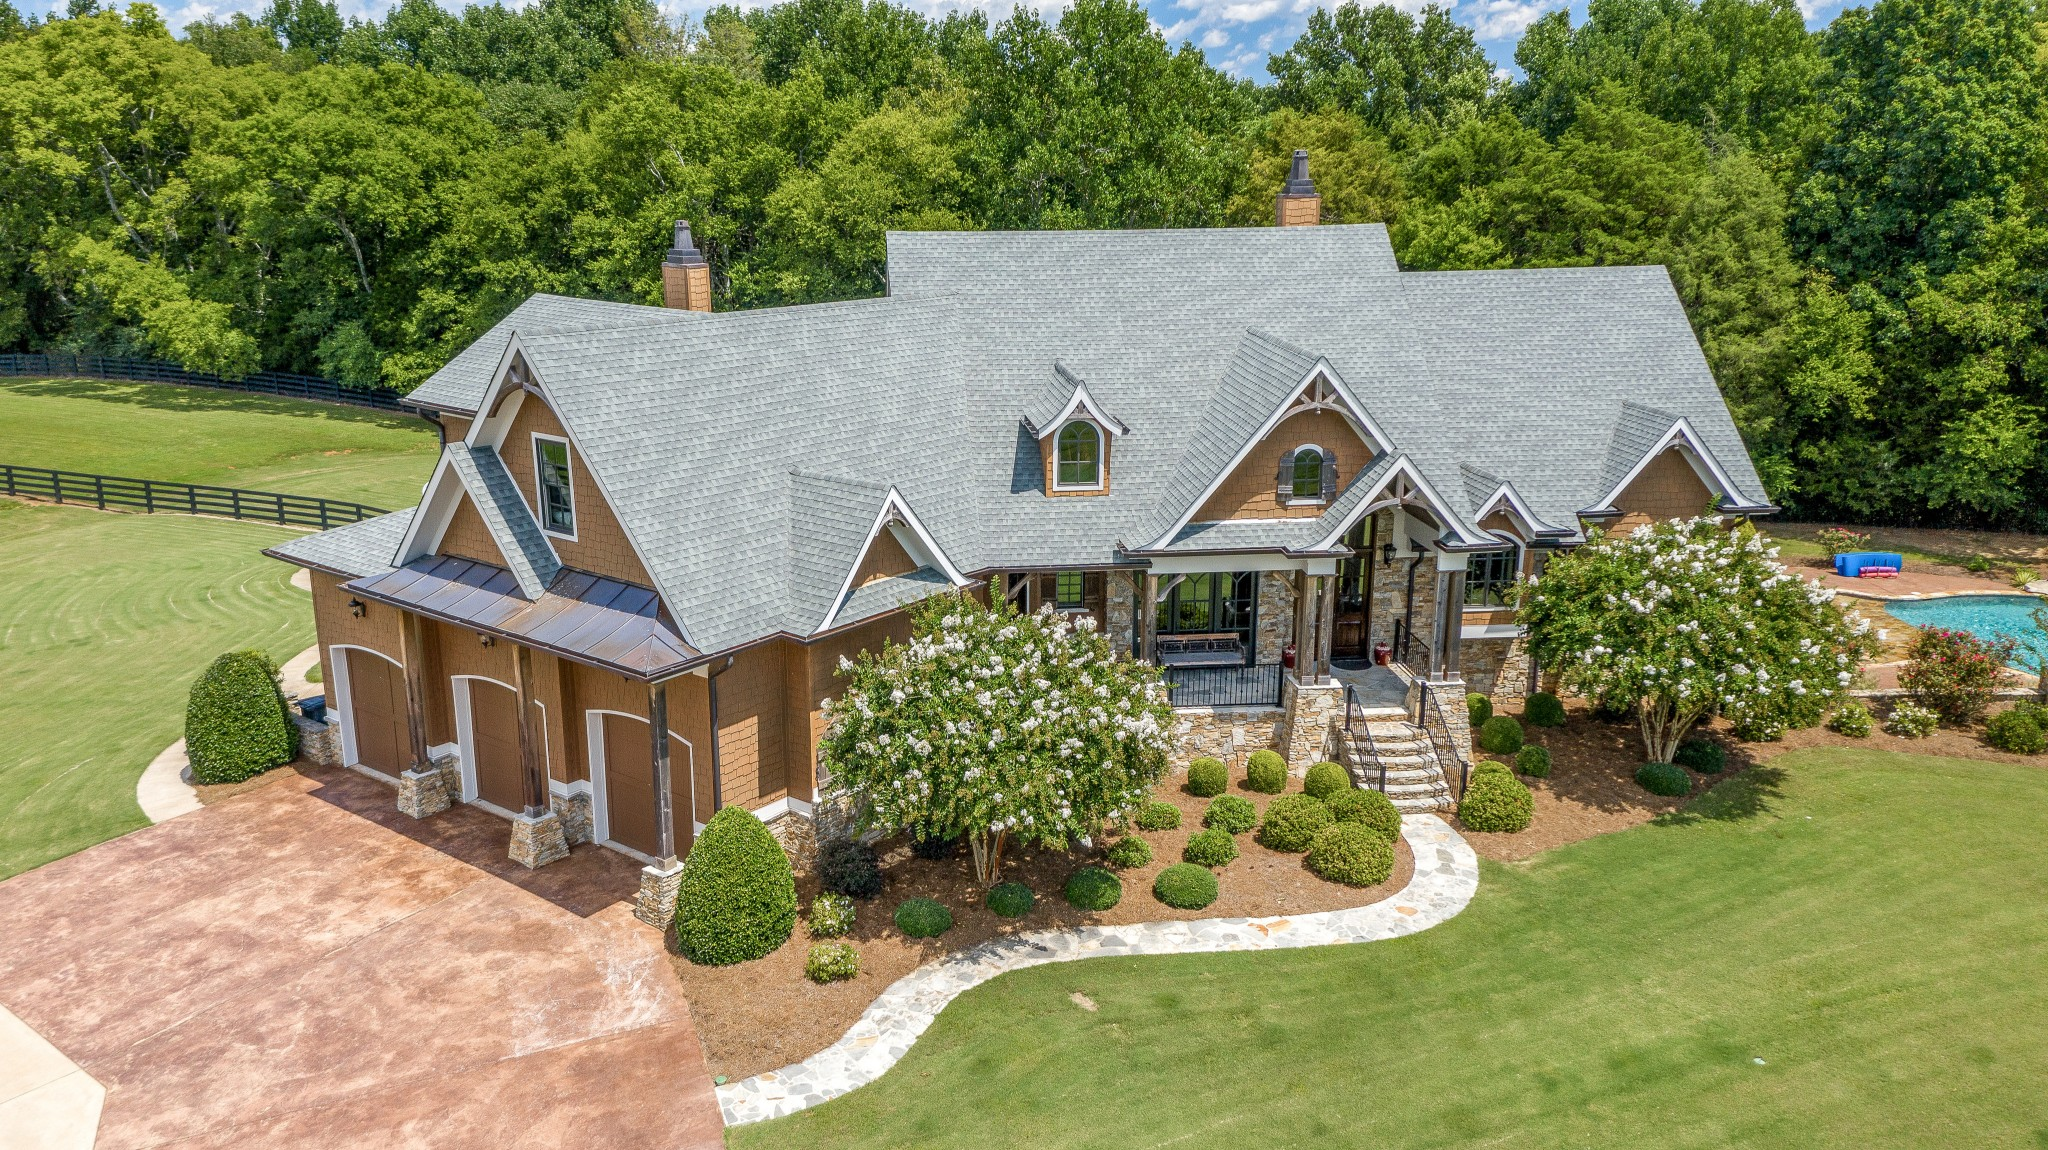 183 Blanche Rd, Ardmore, TN 38449 - Ardmore, TN real estate listing